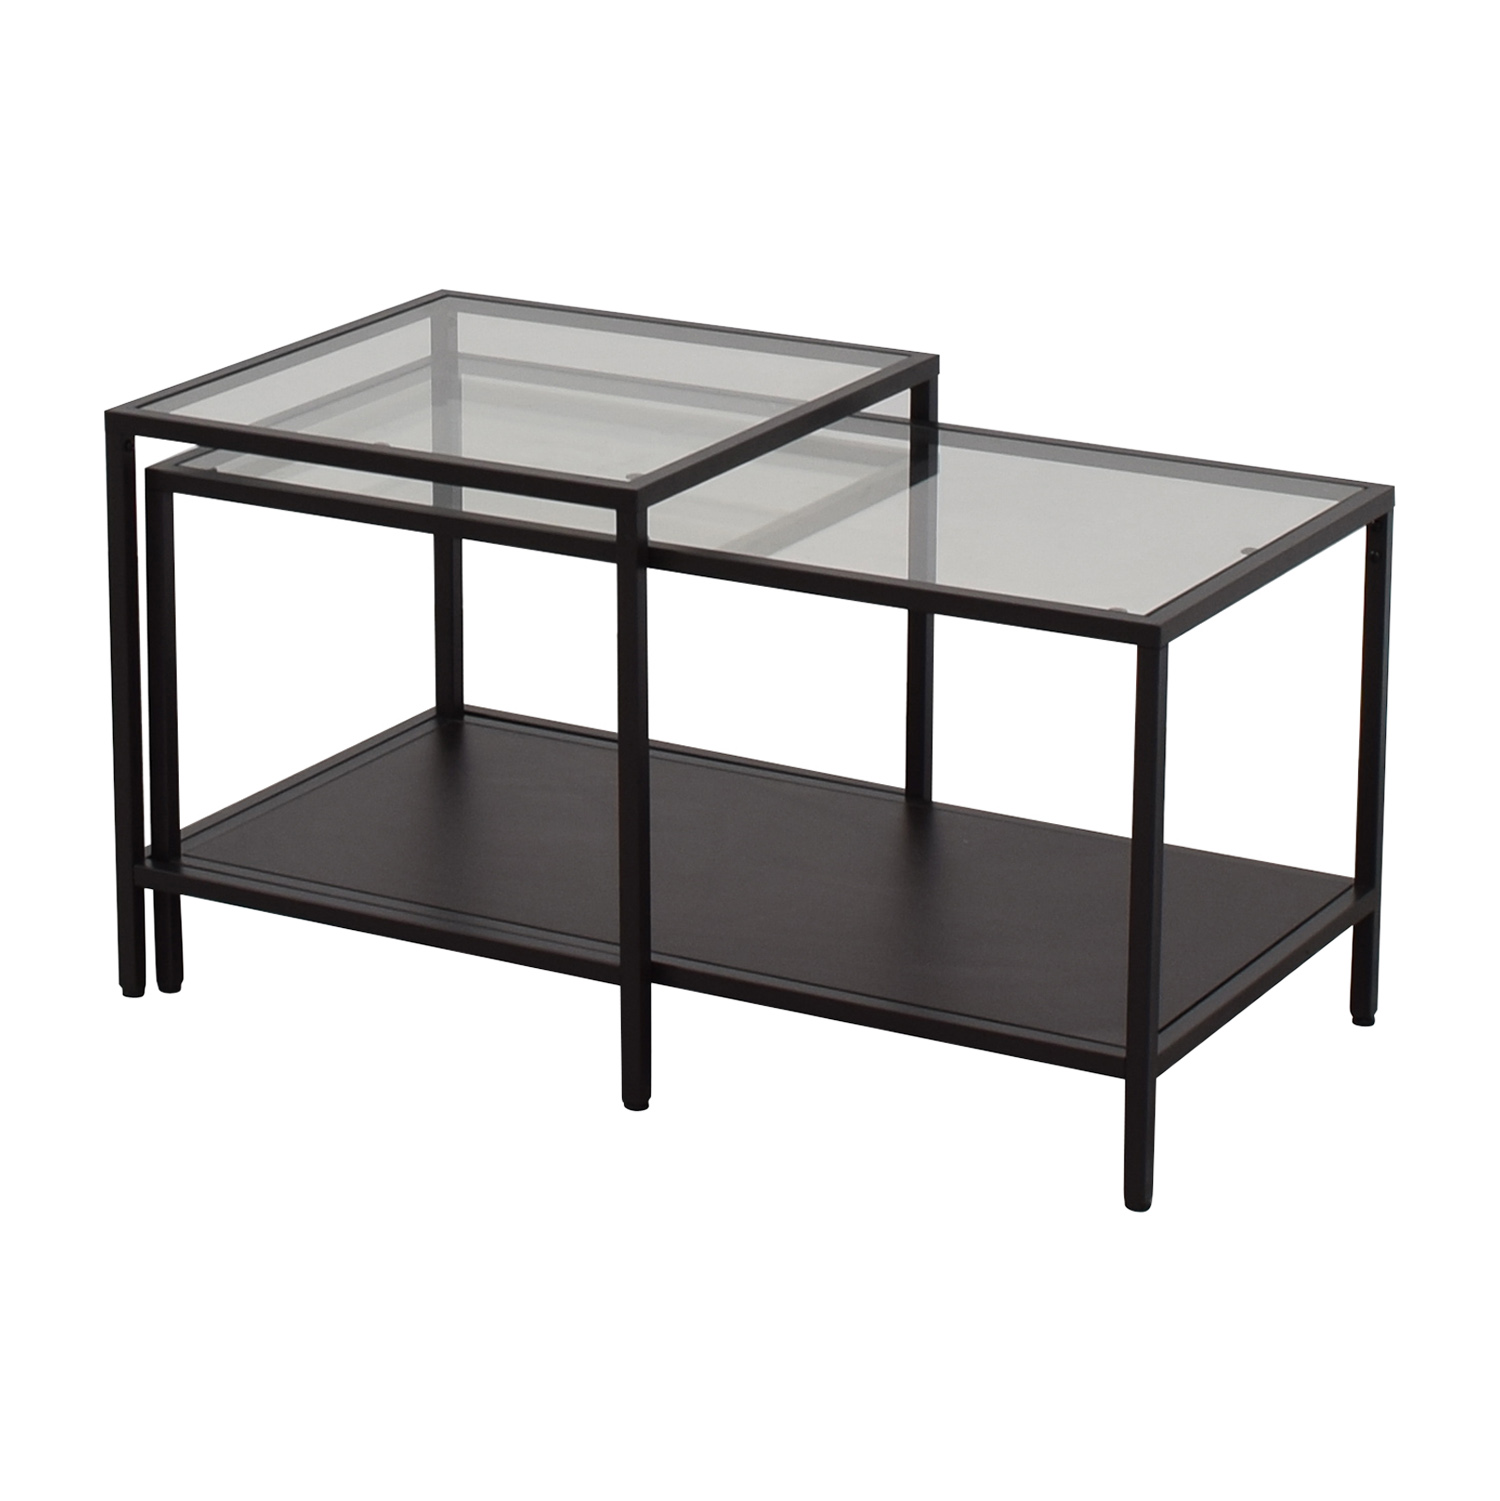 51 off ikea ikea nesting coffee tables tables. Black Bedroom Furniture Sets. Home Design Ideas